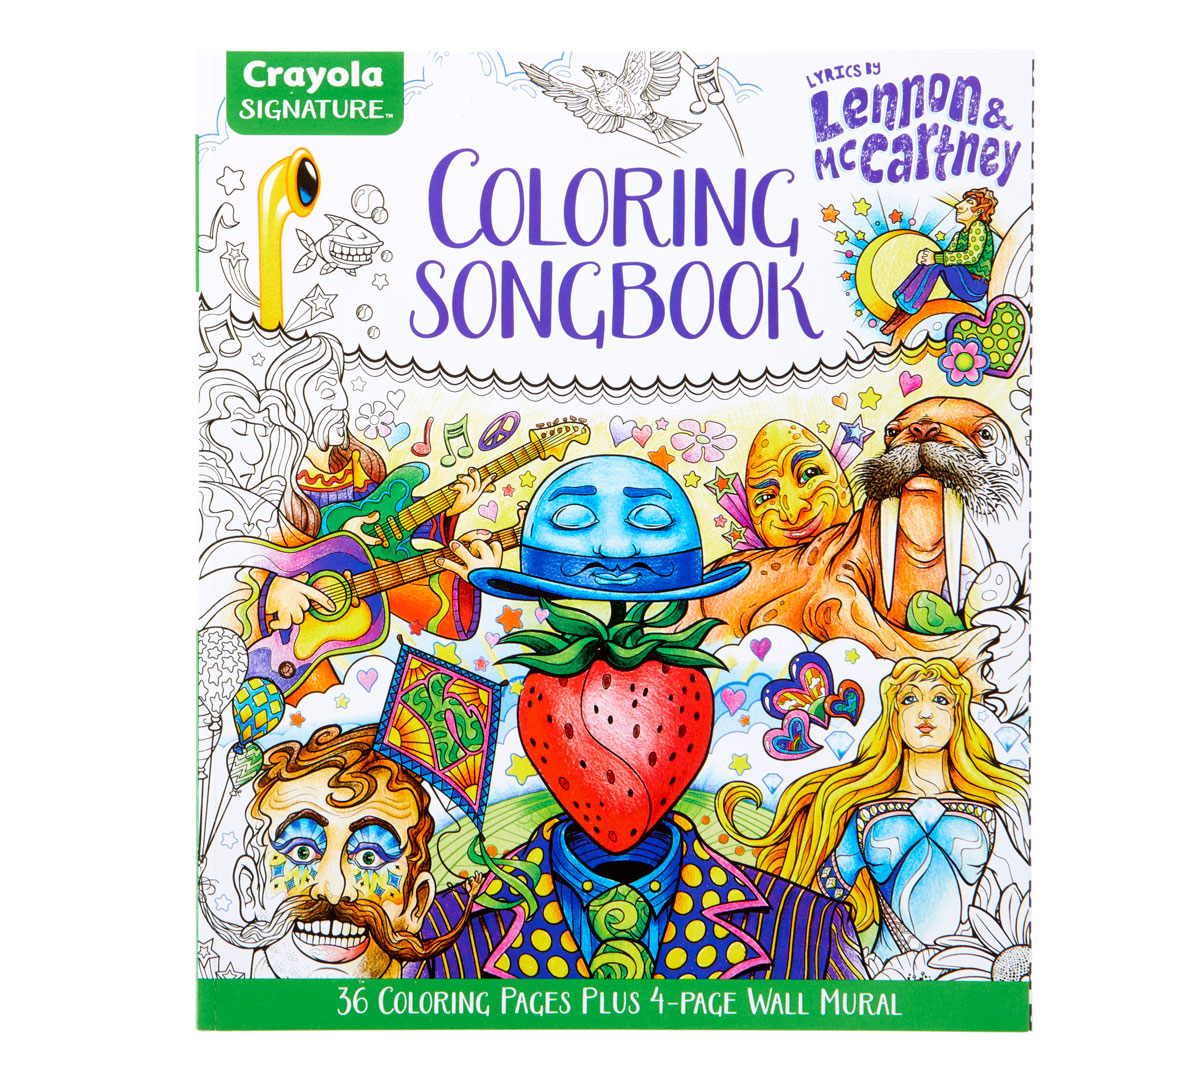 Lennon And Mccartney Lyrics Coloring Book Crayola Com Crayola